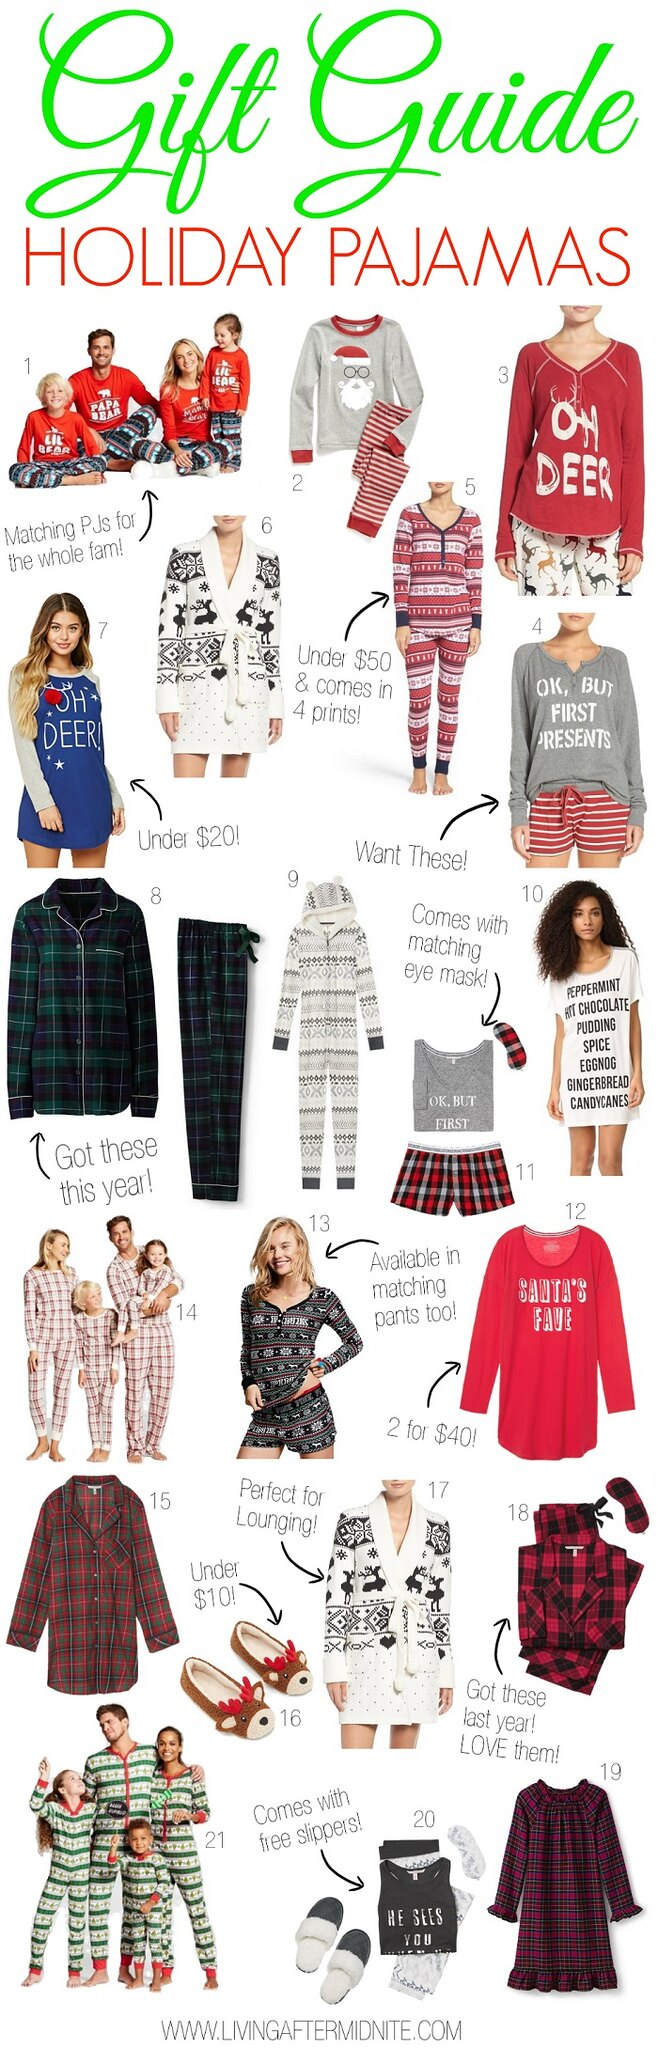 Gift Guide: Holiday Pajamas for the Whole Family | Christmas Presents